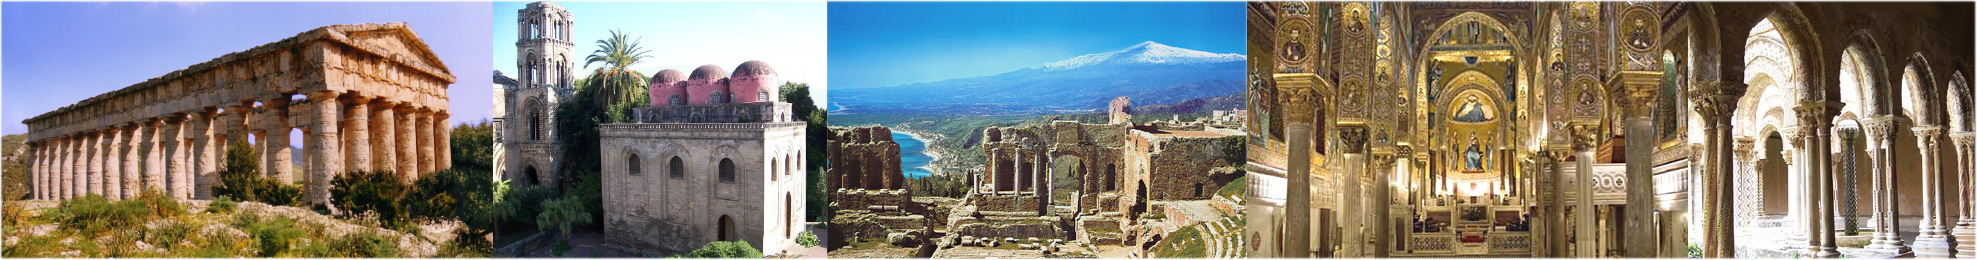 Segesta's Greek temple, San Cataldo Church and Martorana Tower in Palermo, Mt Etna and Taormina's Greek amphitheatre, Palermo's Palatine Chapel, Monreale's cloister.